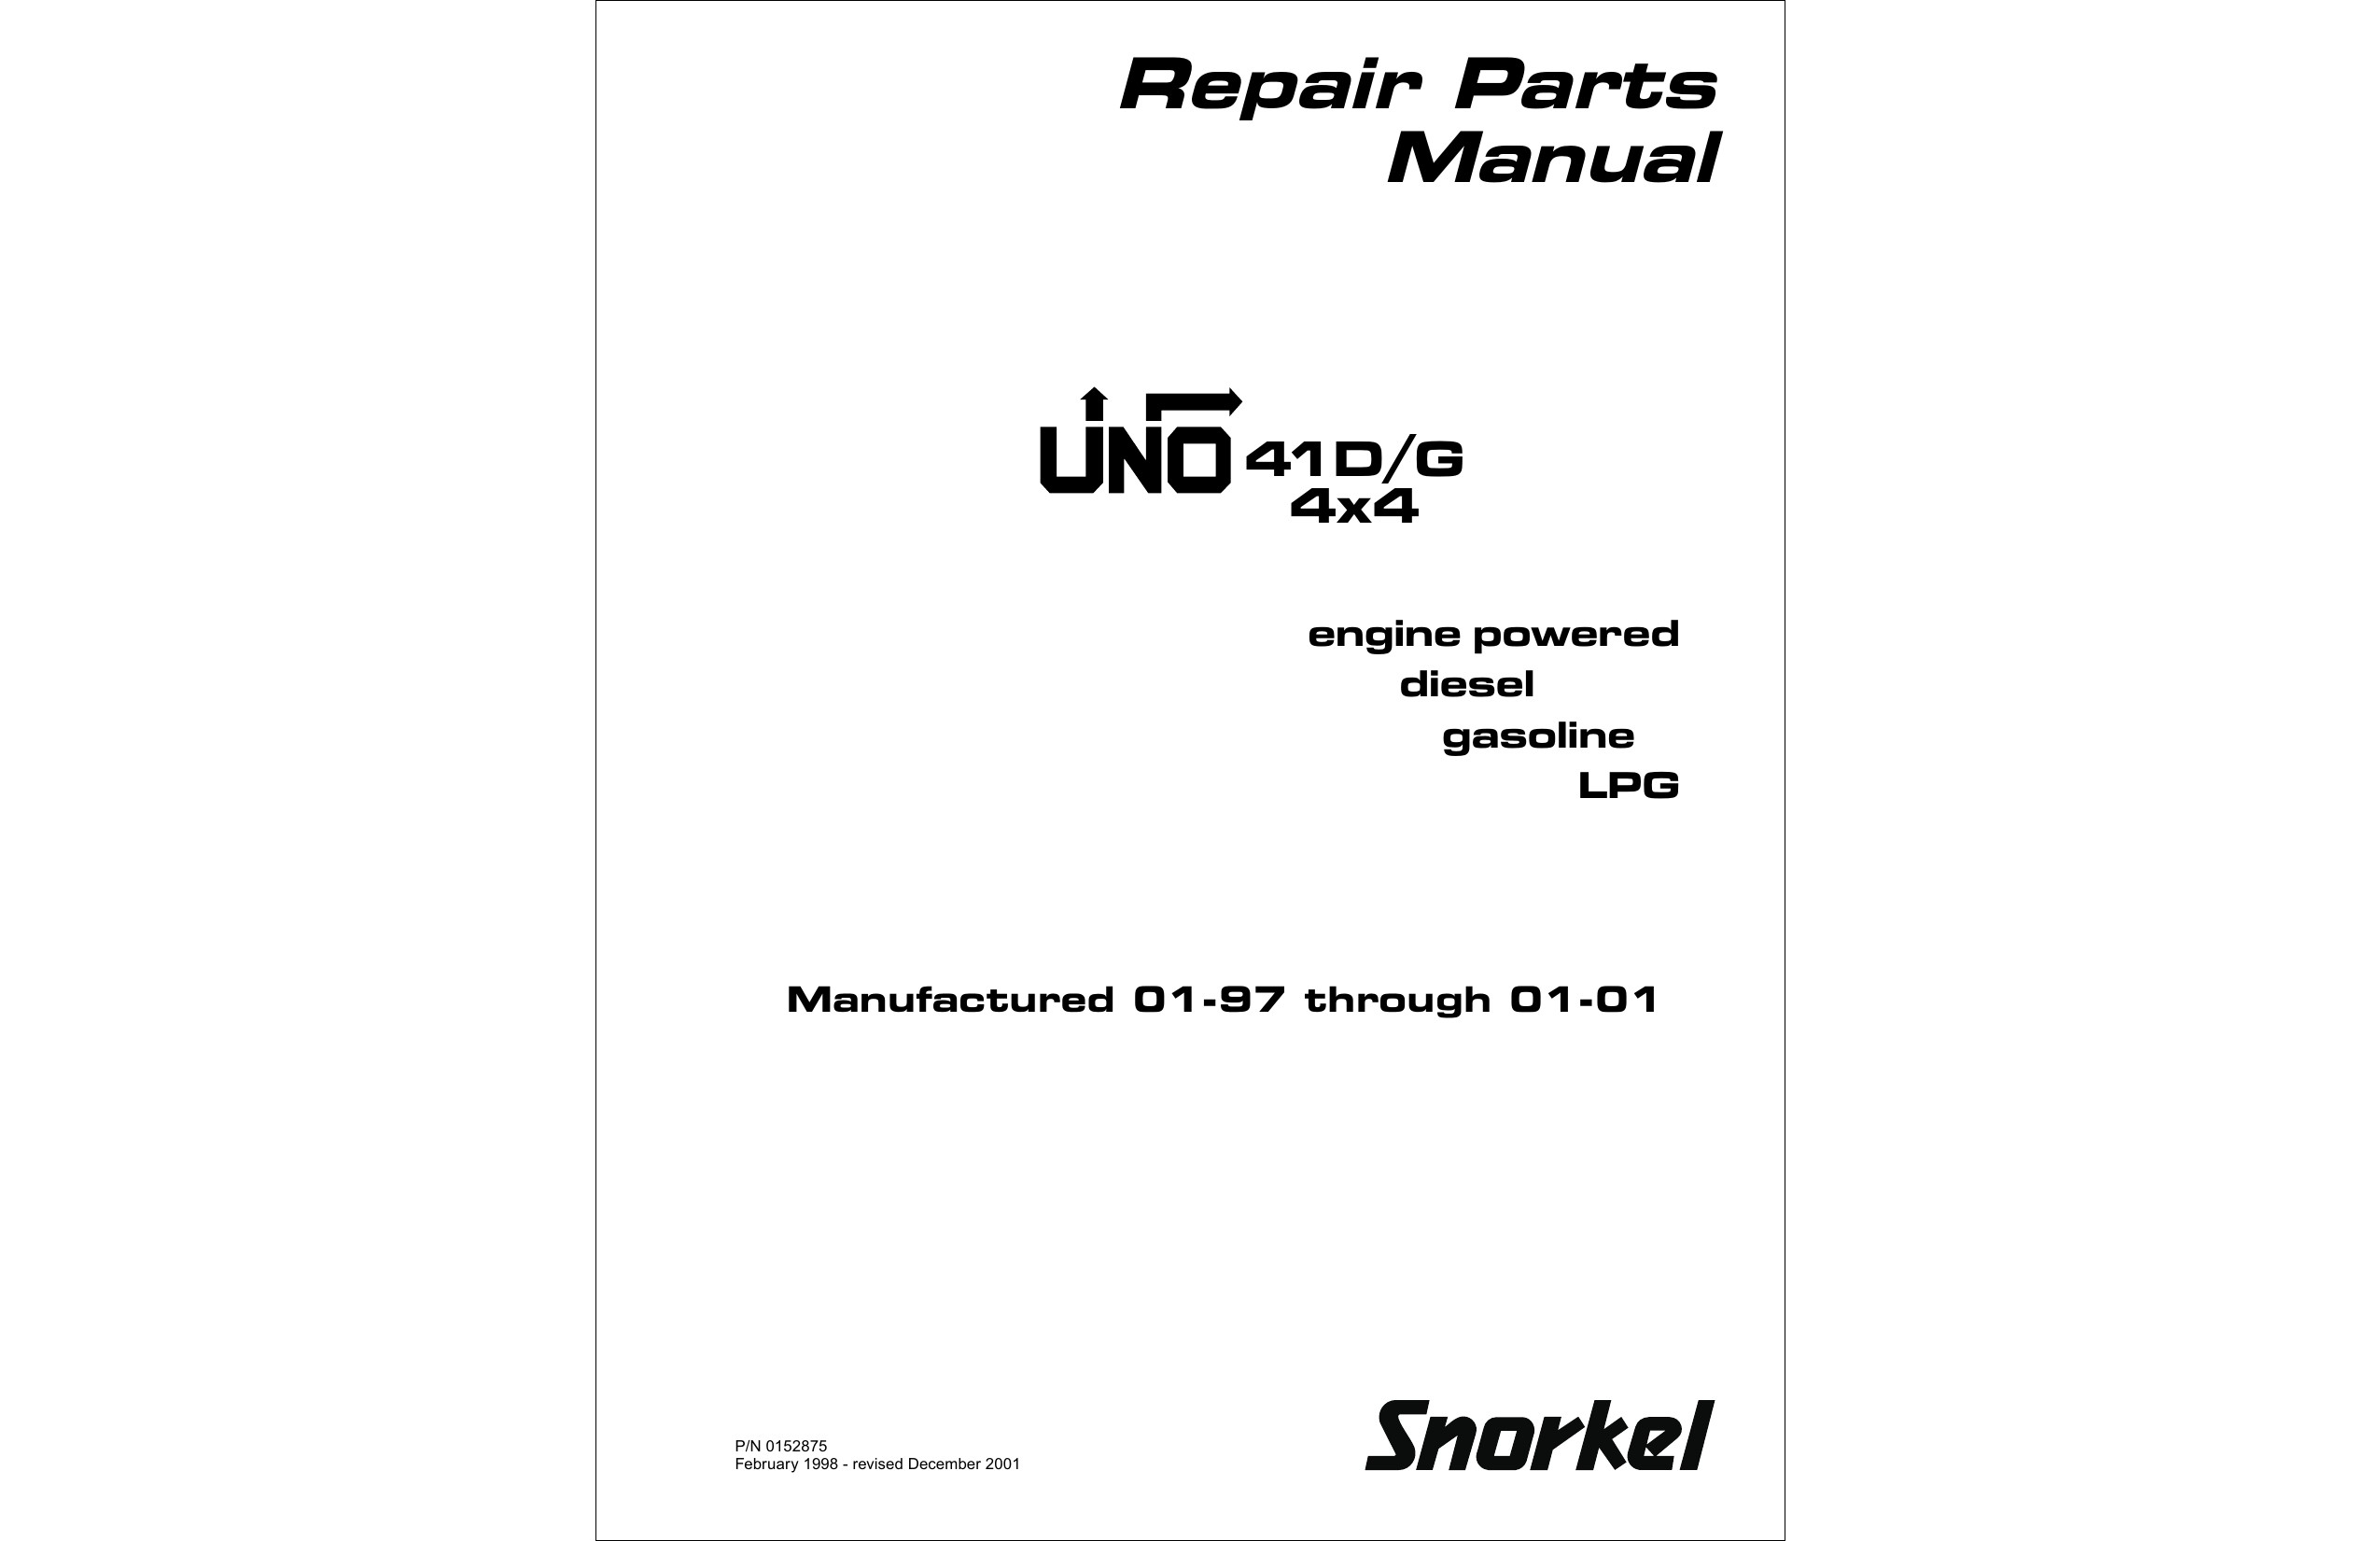 Wiring Schematics for A 41g Uno Snokel Lift Repair Parts Manual Of Wiring Schematics for A 41g Uno Snokel Lift